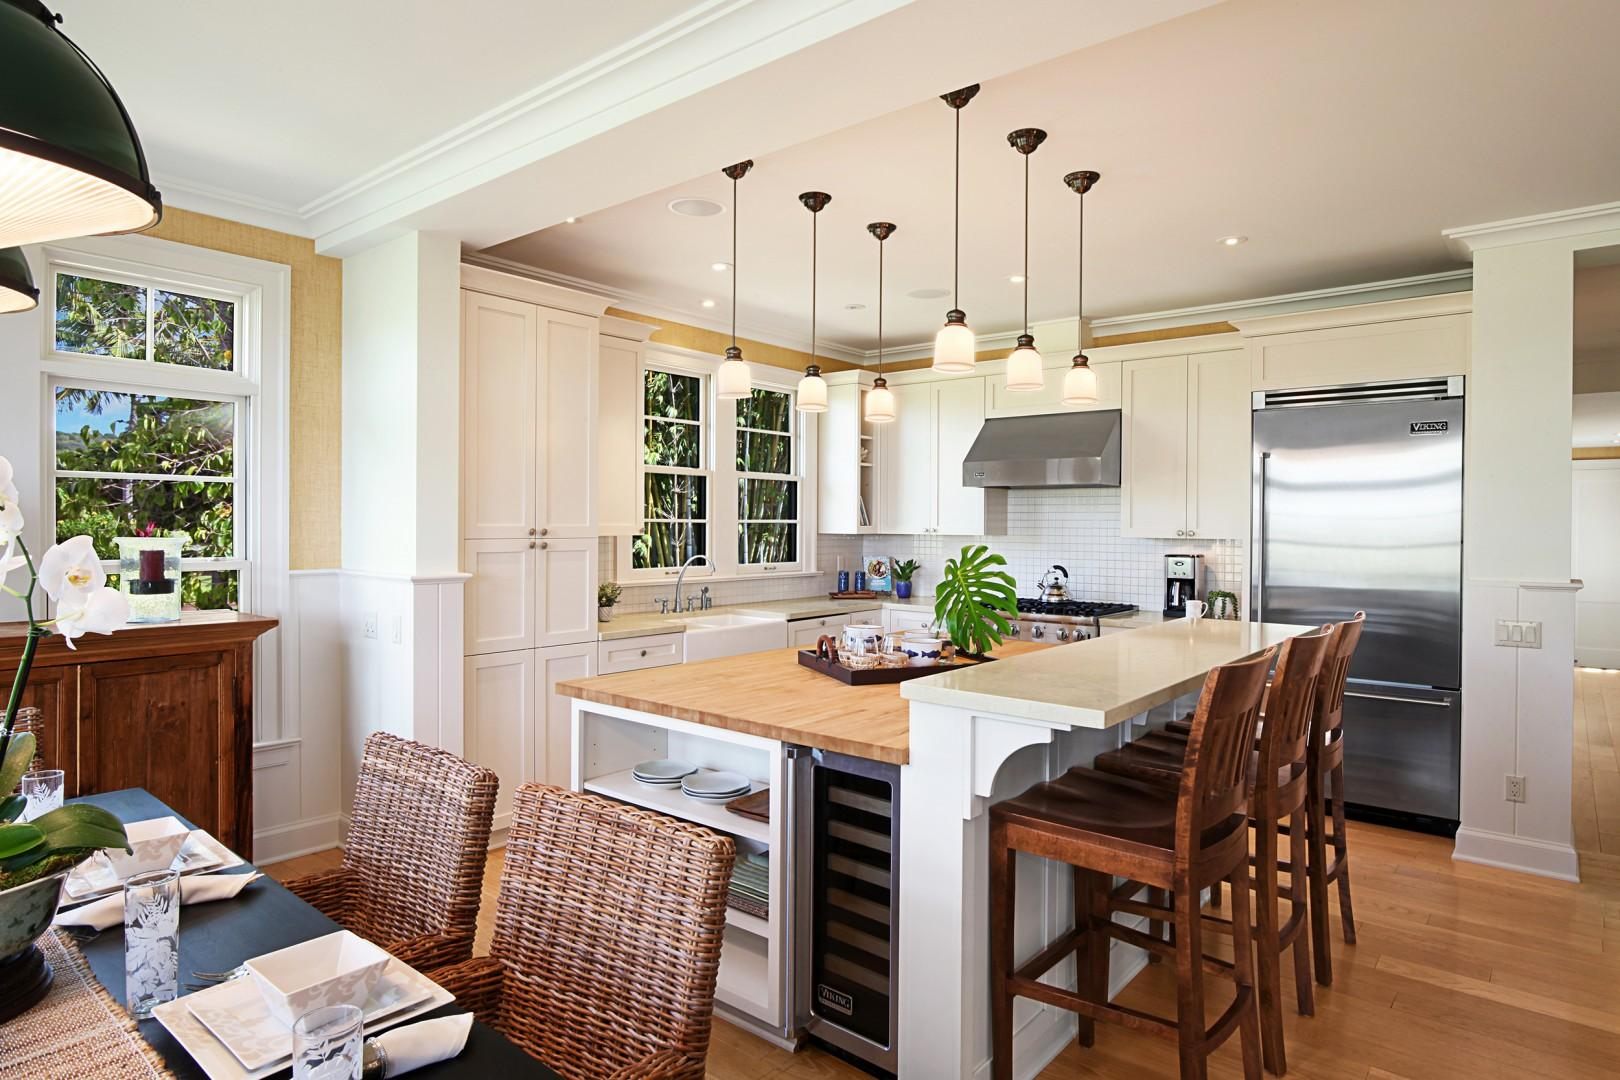 Well appointed kitchen with high-end appliances